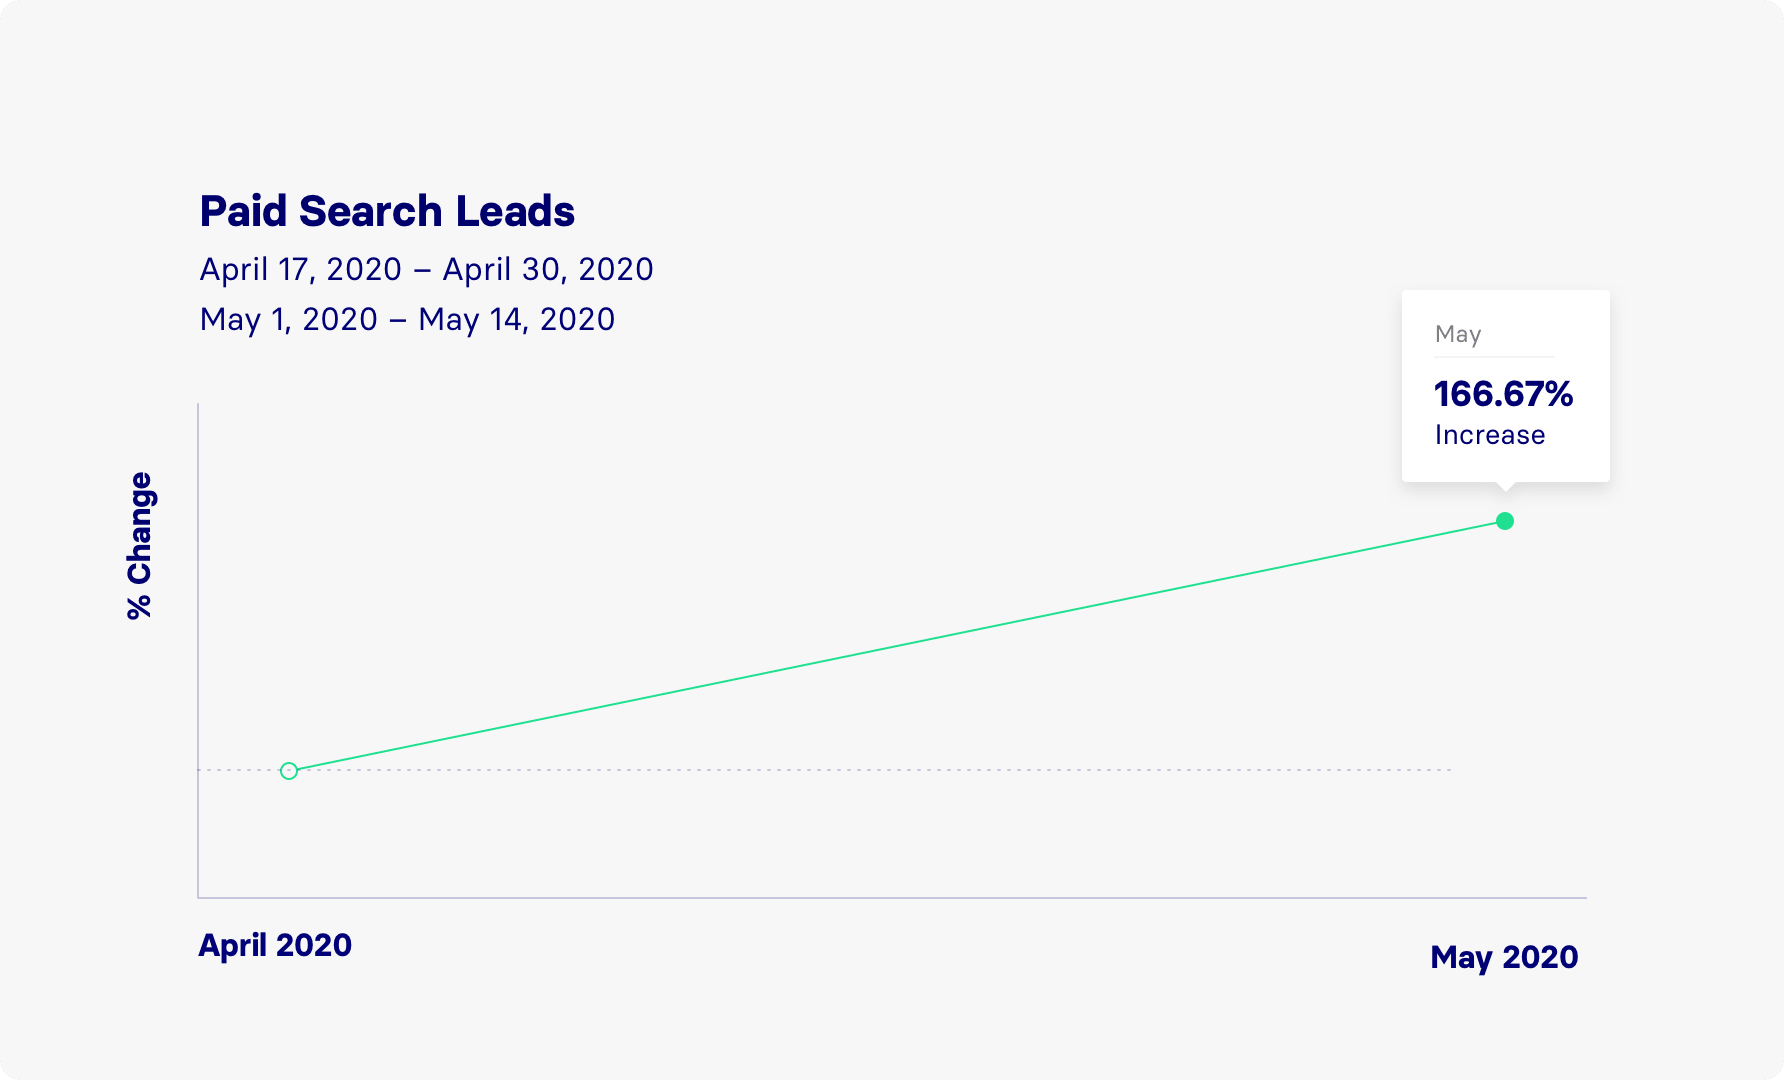 Comparing the first 14 days of May to the last 14 days in April, we had a 167% increase in paid leads.